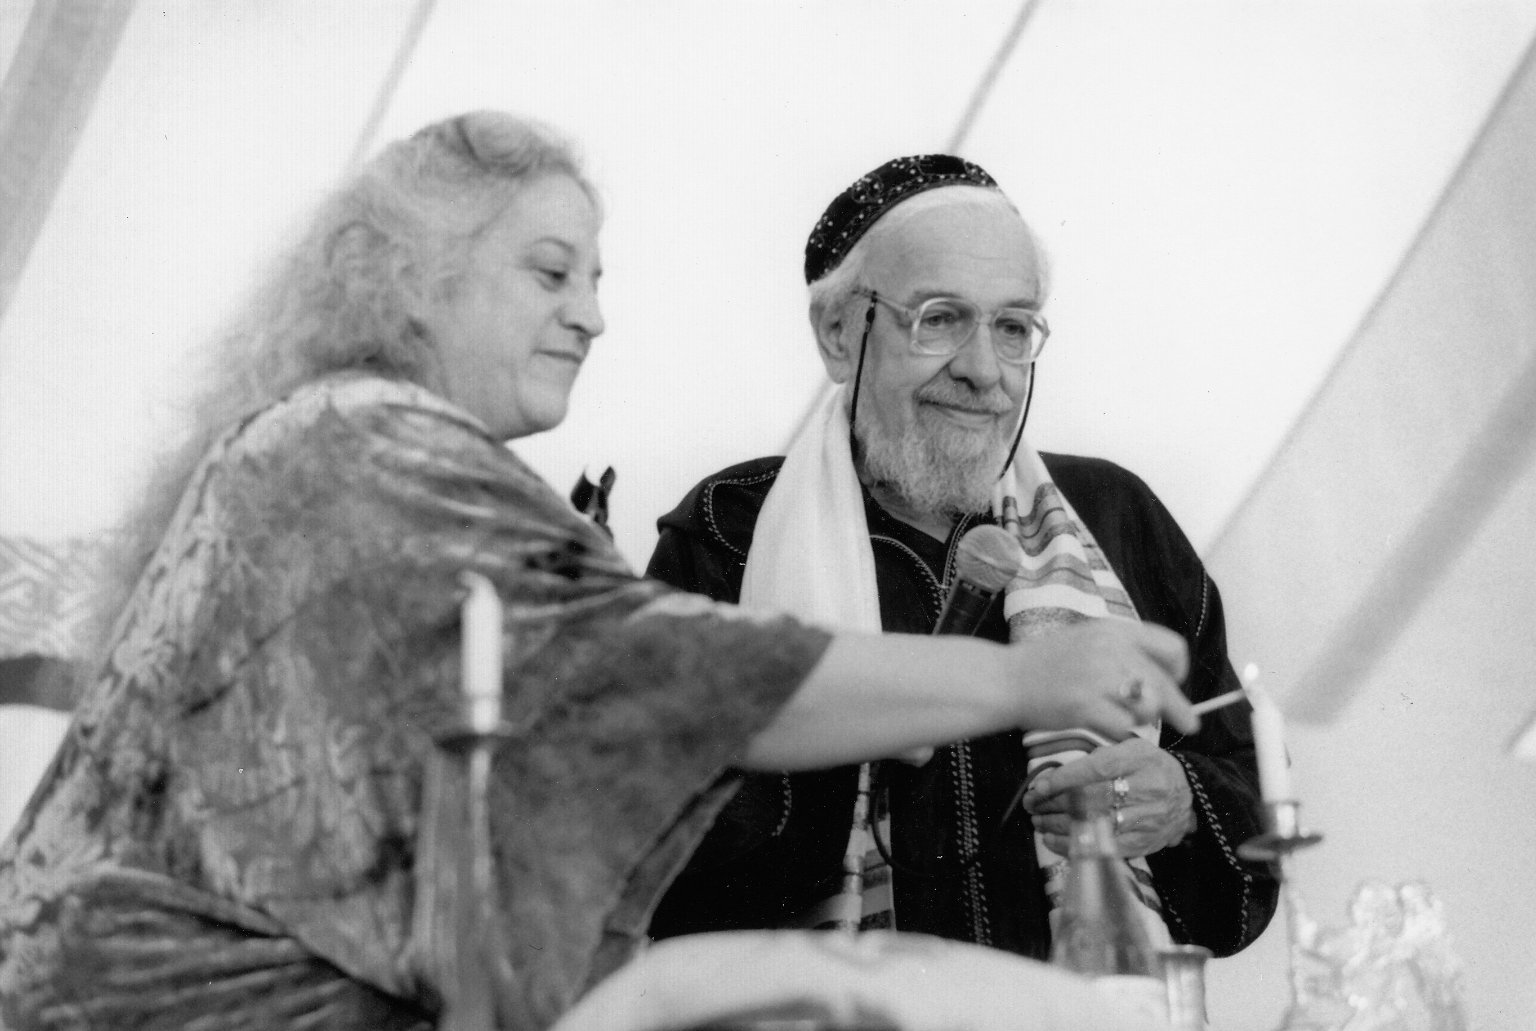 Rabbi Zalman Schachter-Shalomi and his partner, Eve Ilsen, lighting candles before saying kiddush at the President's Dinner at the Naropa Institute, May 1999.